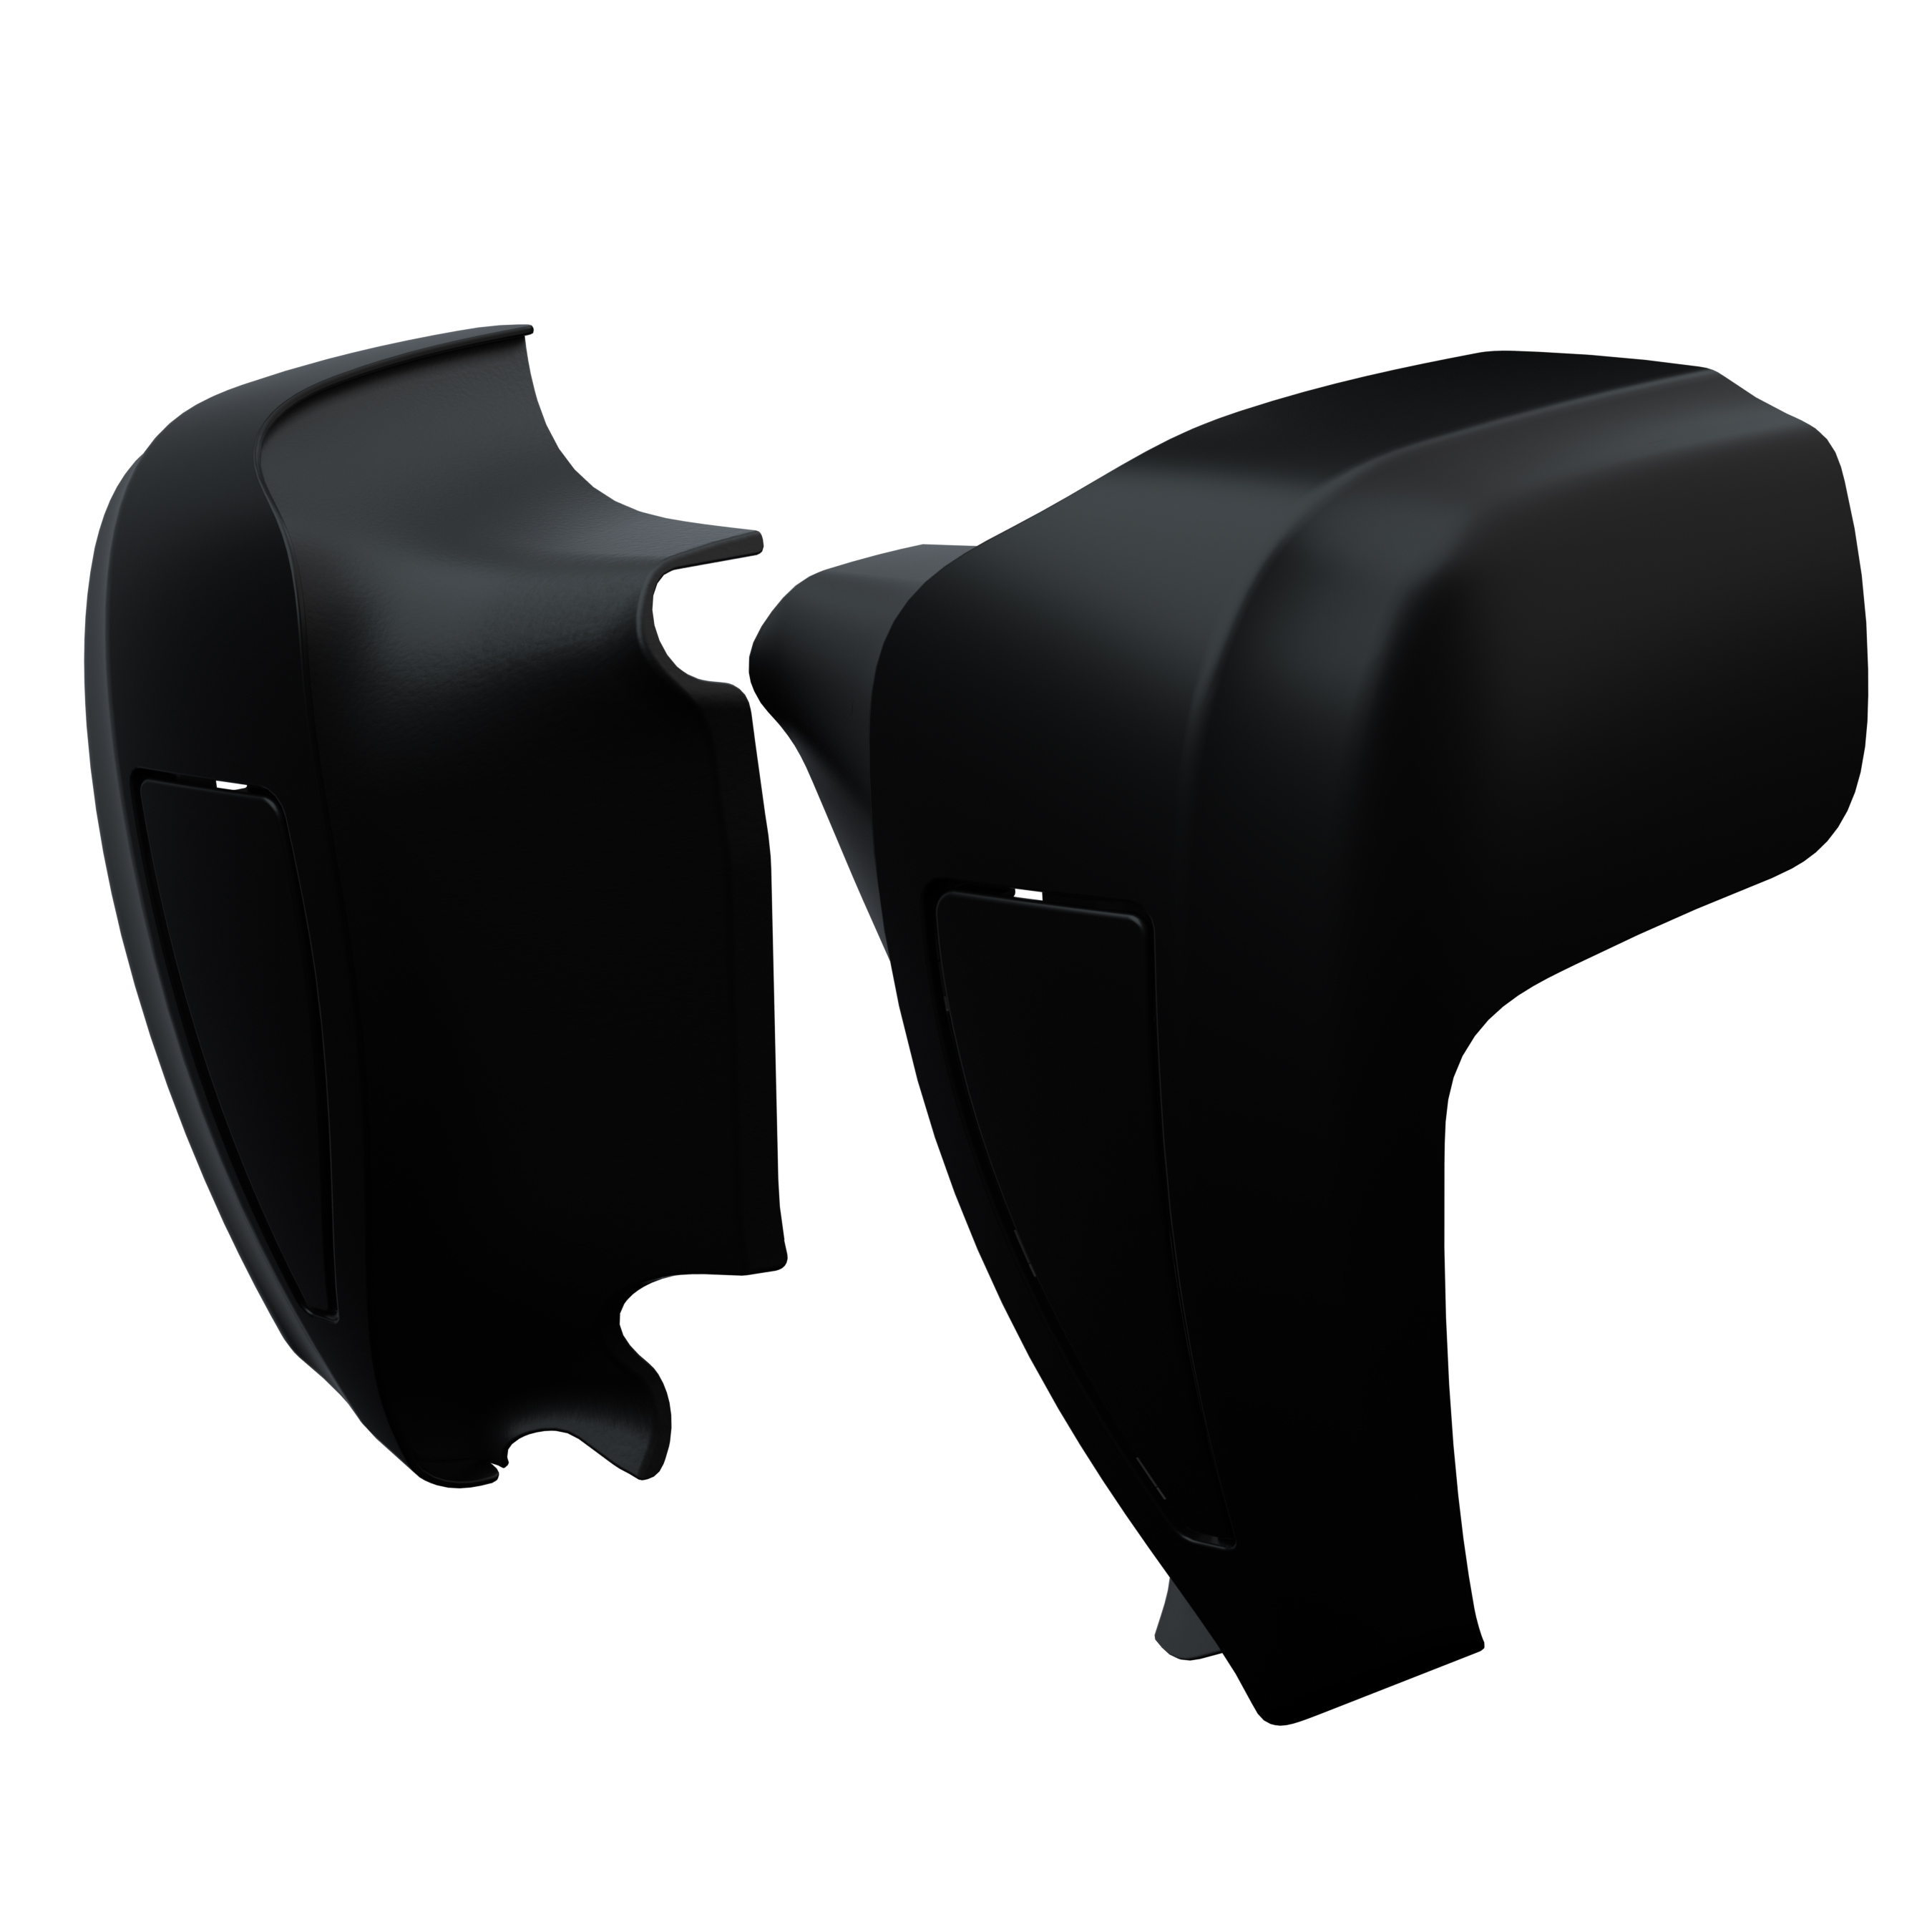 Hard Lower Fairings in Thunder Black Smoke, Pair